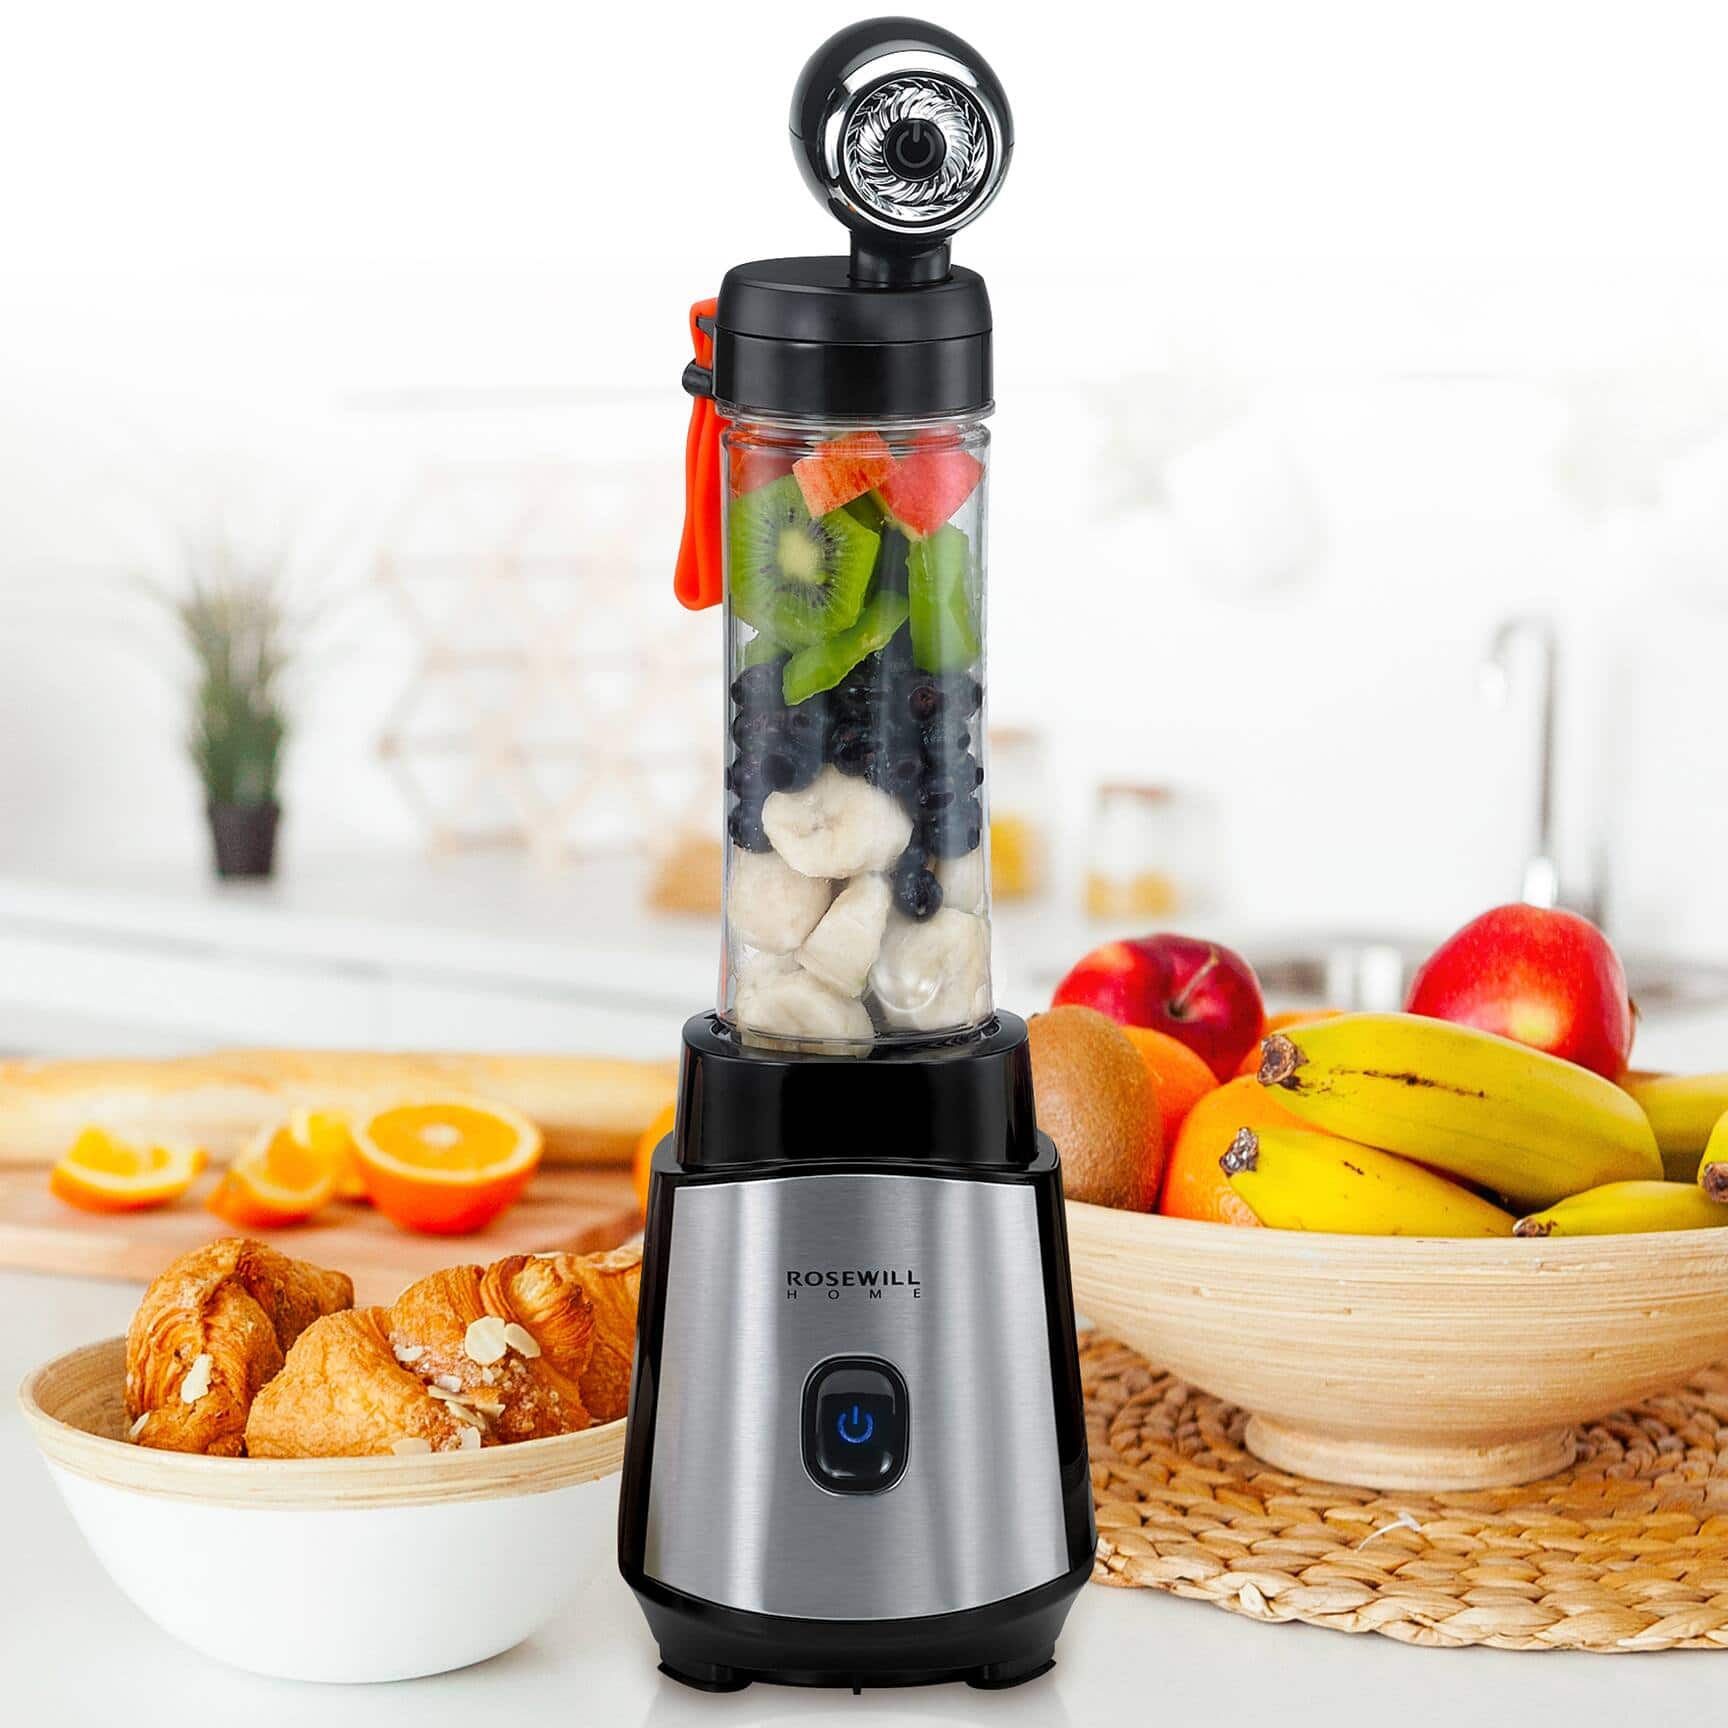 Rosewill - Single Serving Personal Blender $16.99 + Free Shipping